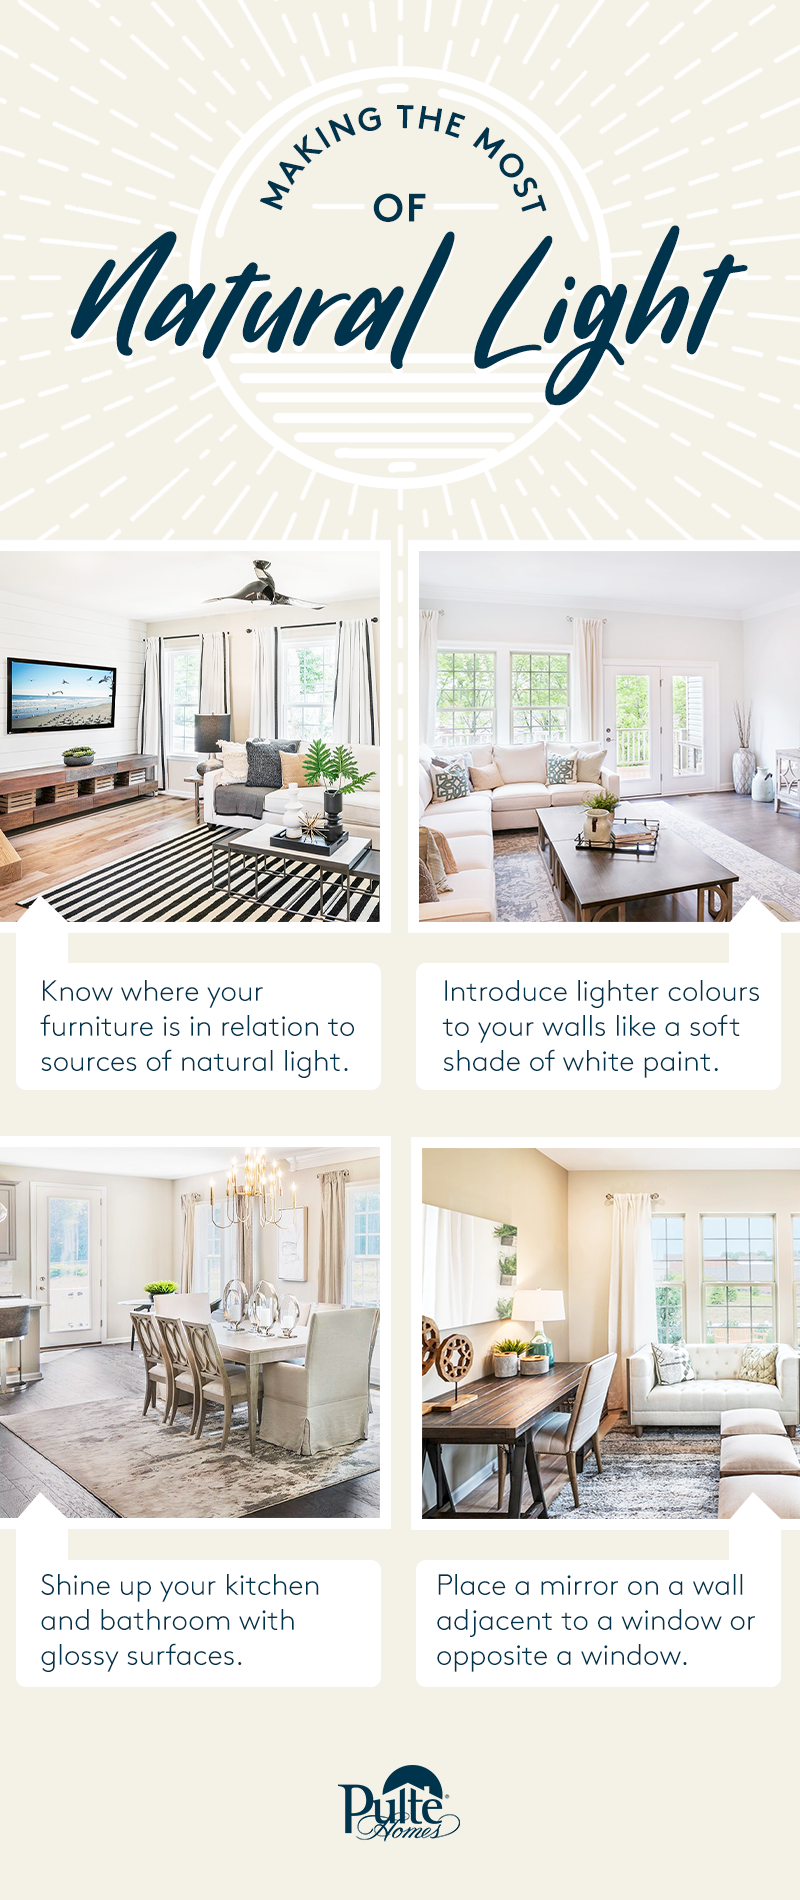 Making The Most Of Natural Light Design Your Dream House Custom Homes Custom Home Designs